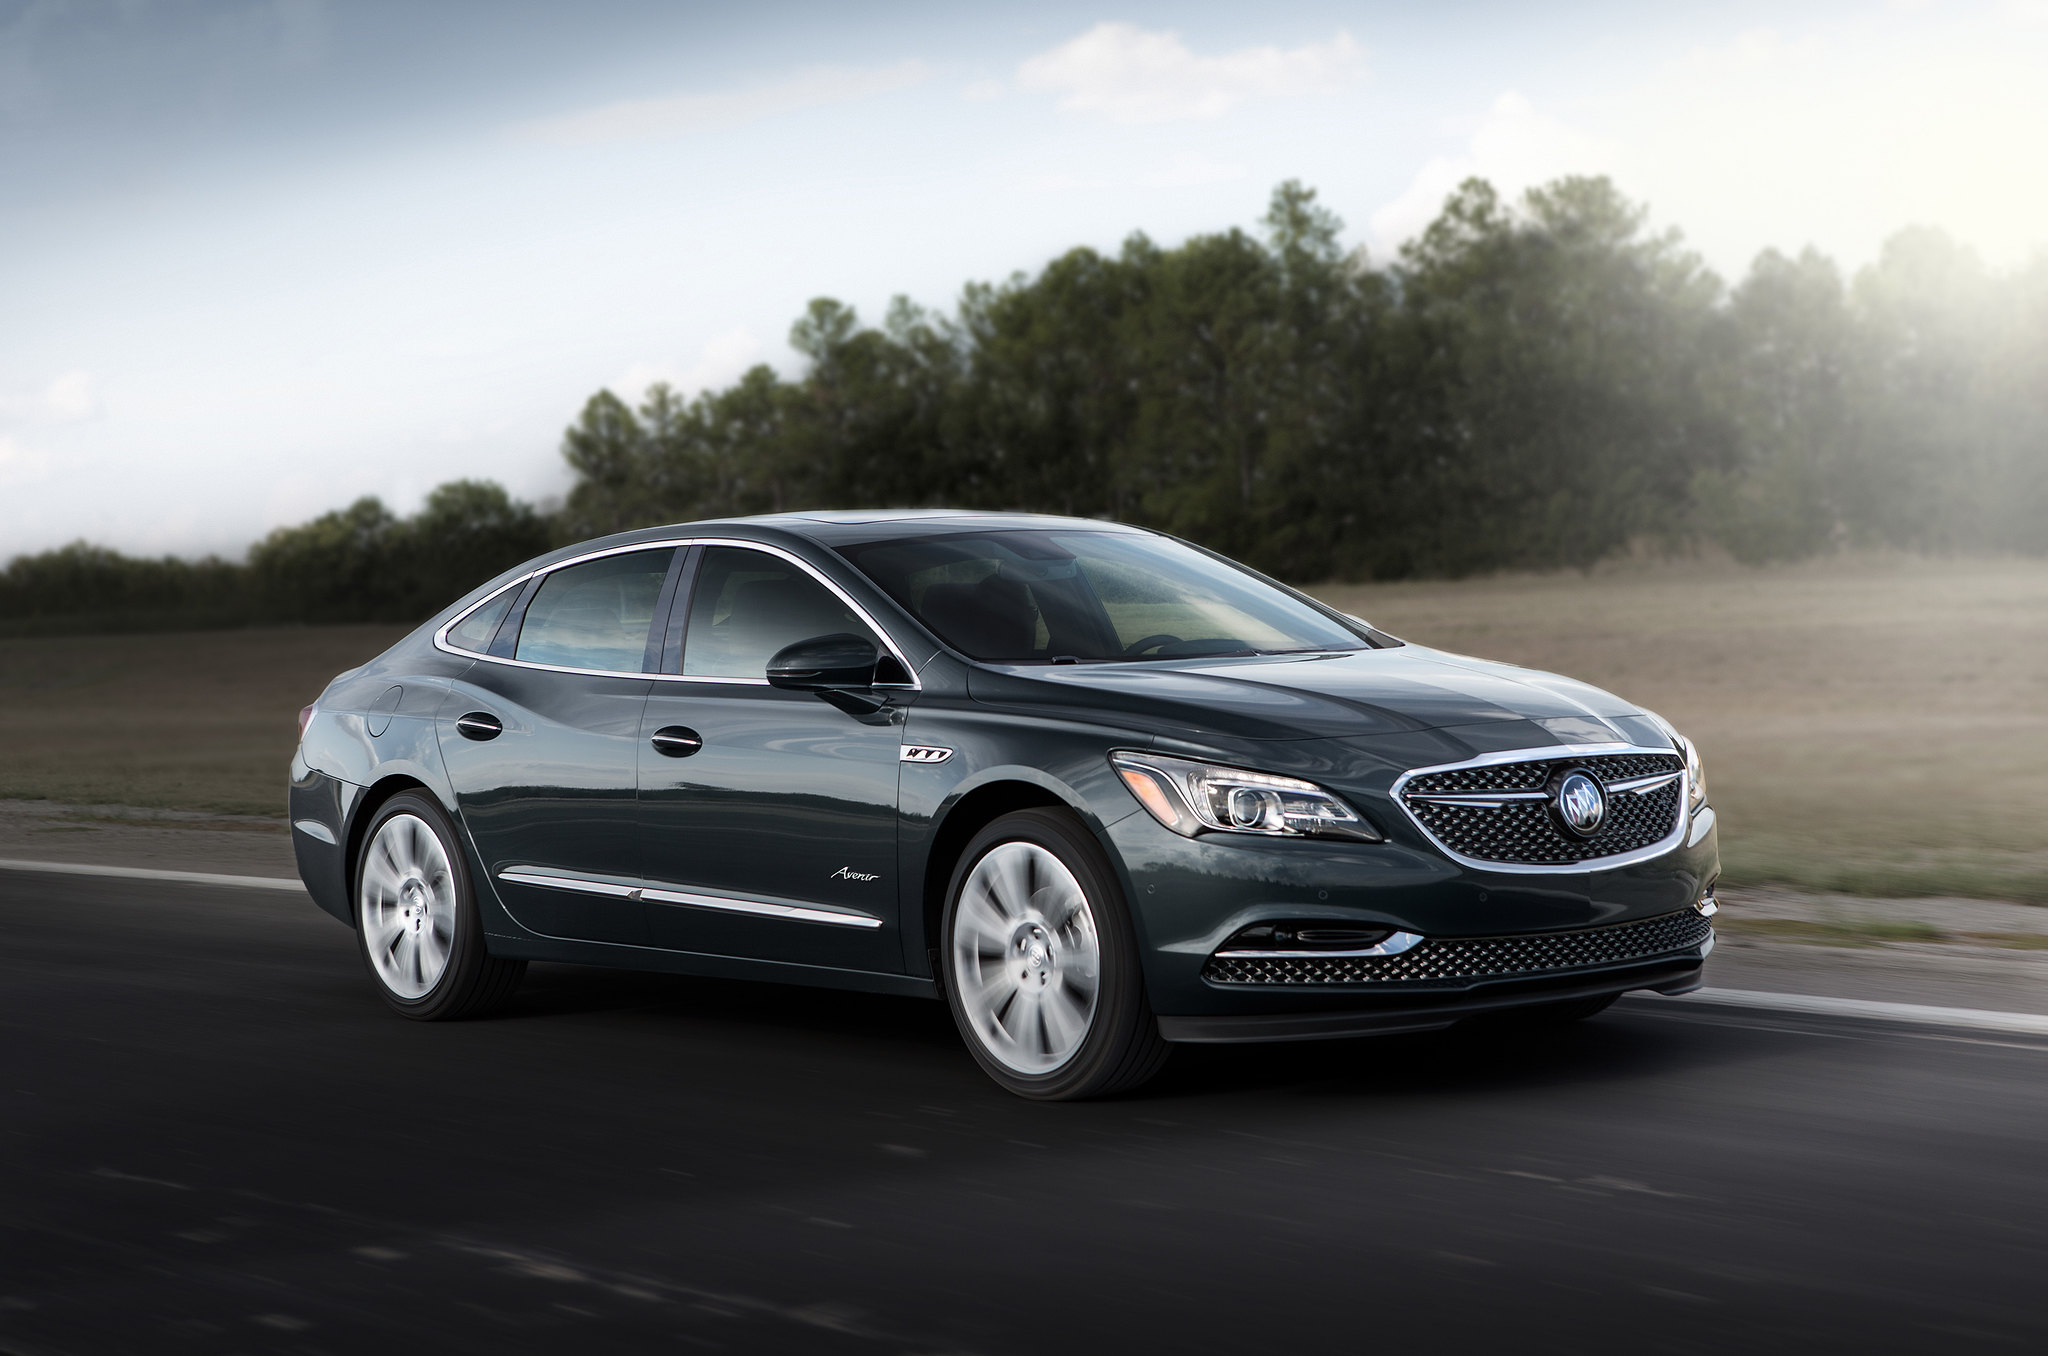 This is the 2018 Buick LaCrosse Avenir